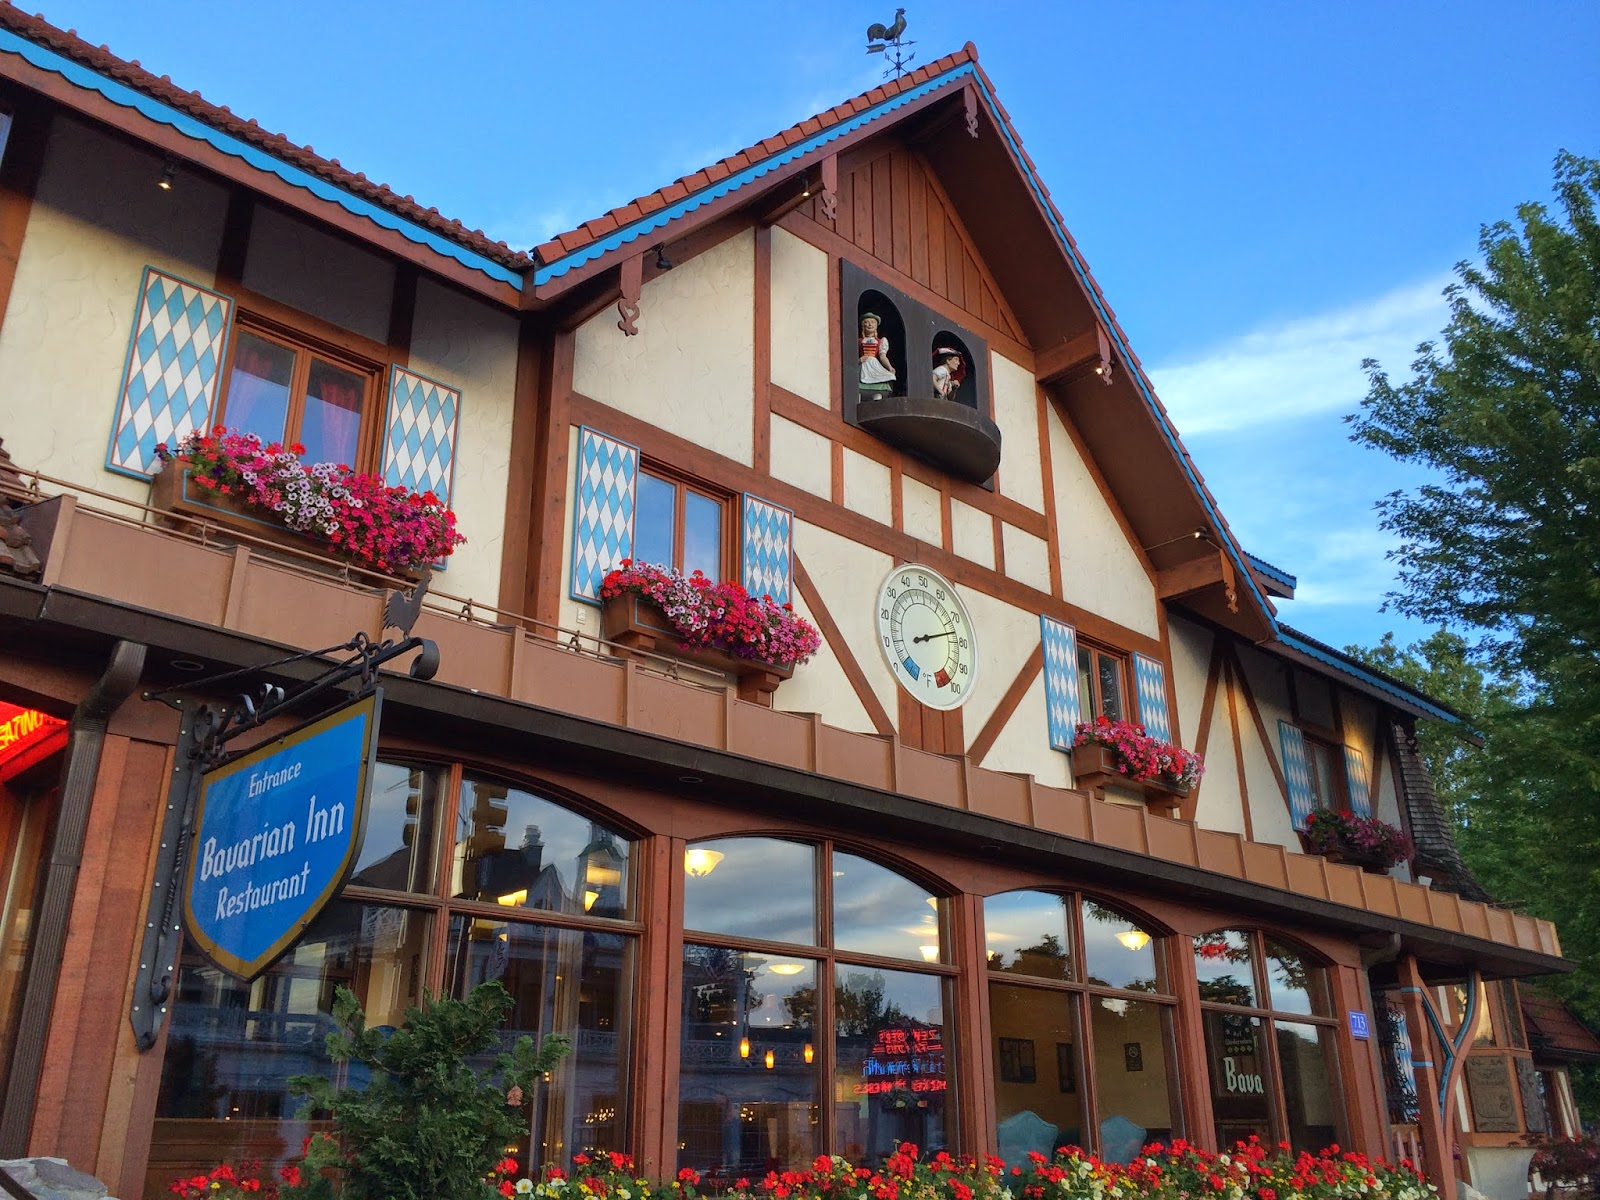 Bavarian Inn Restaurant Frankenmuth, Michigan